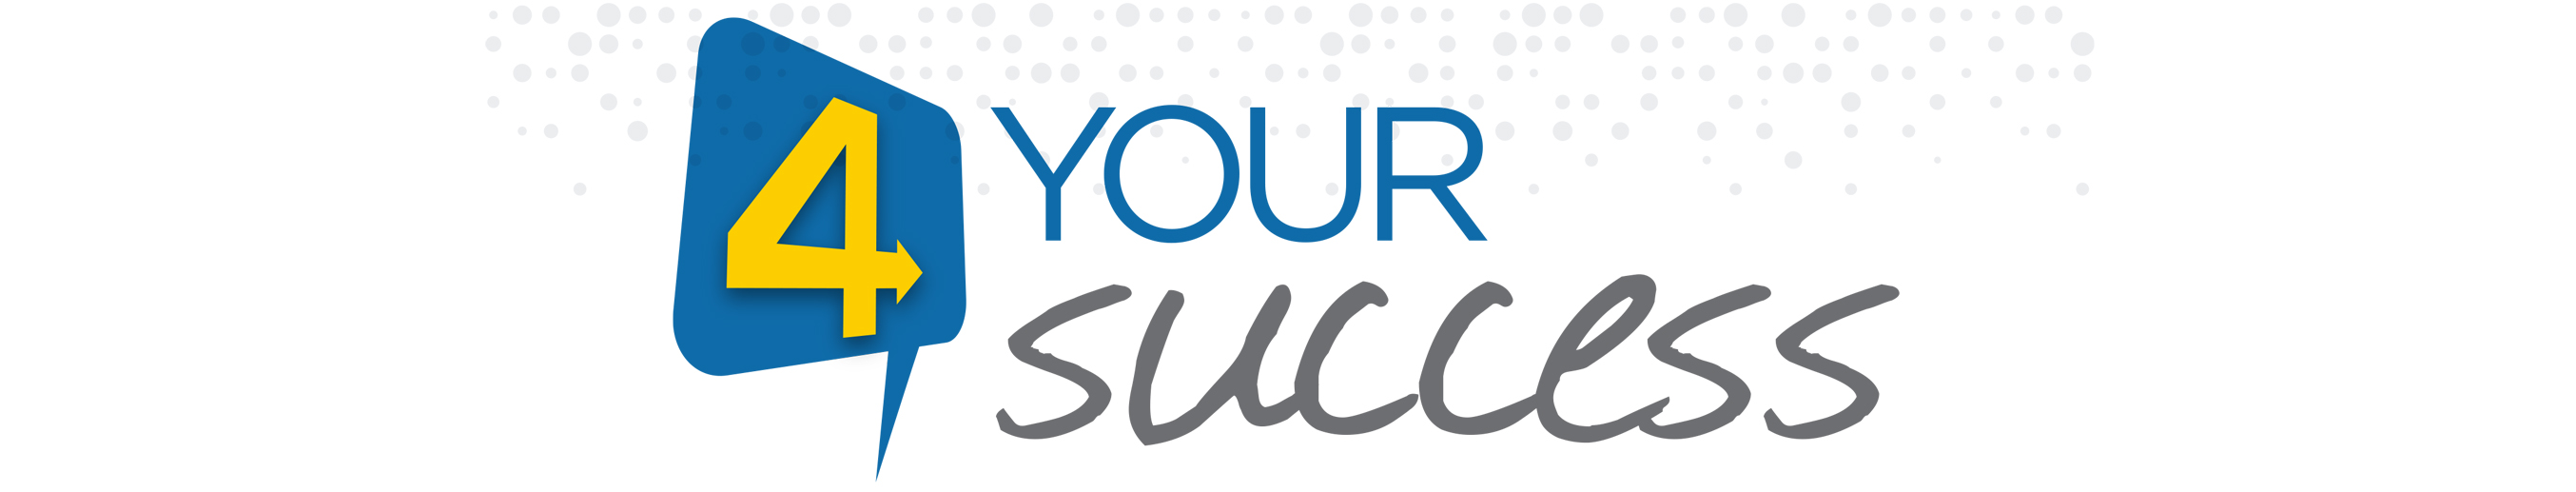 4YourSuccess2